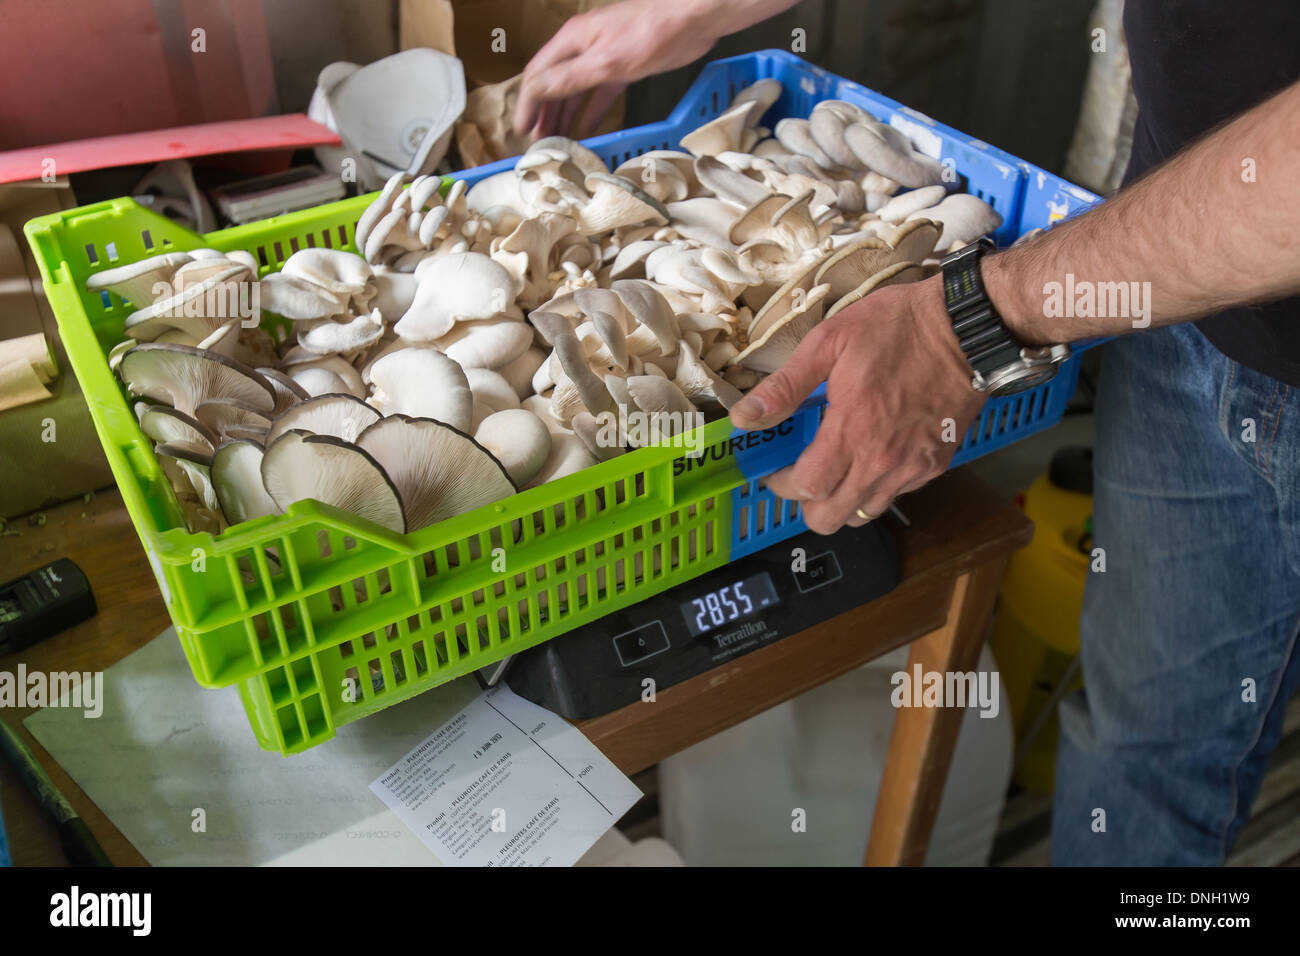 CEDRIC PECHARD, AGRICULTURAL ENGINEER, INITIATOR OF THE CITY MICRO-FARM PROJECT U-FARM, PRODUCTION OF 'CAFE DE PARIS' OYSTER MUSHROOMS IN A MUSHROOM BED WITH A SUBSTRATA MADE UP OF SAWDUST AND COFFEE GROUNDS, PORTE DE MONTREUIL, 20TH ARRONDISSEMENT, PARIS - Stock Image